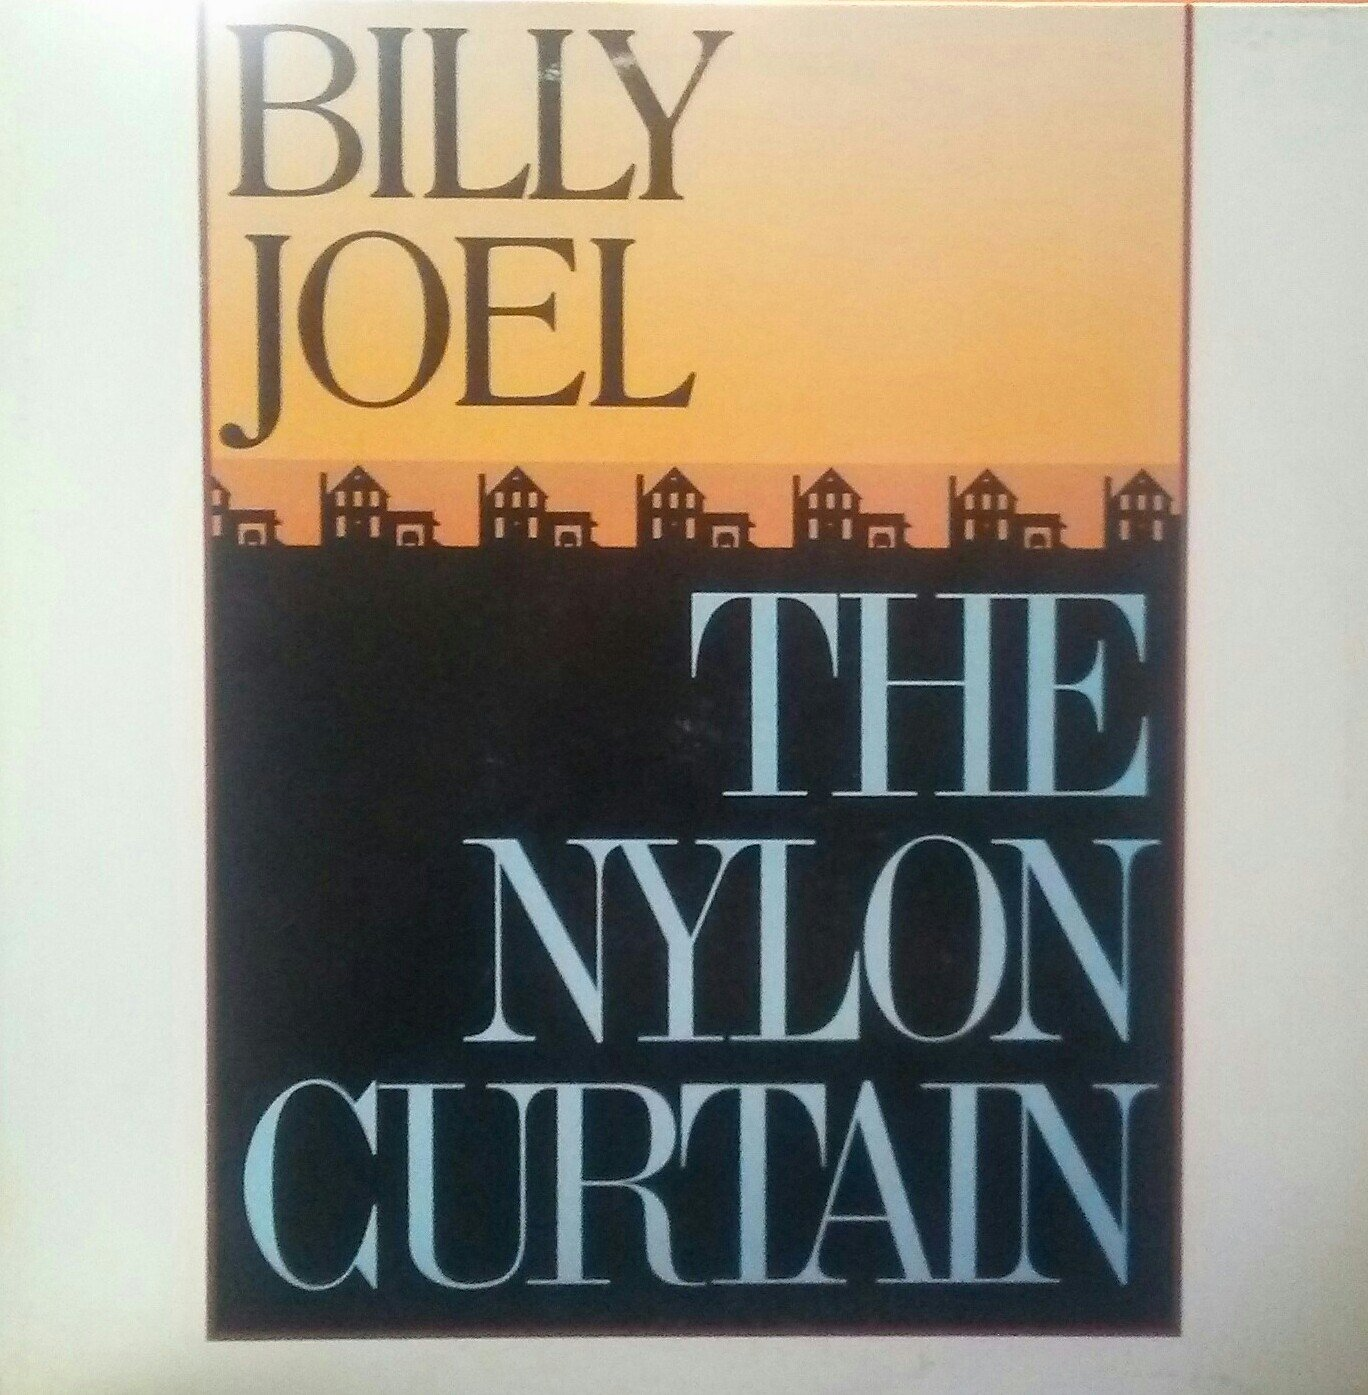 Billy Joel-The Nylon Curtain- (1982) LP